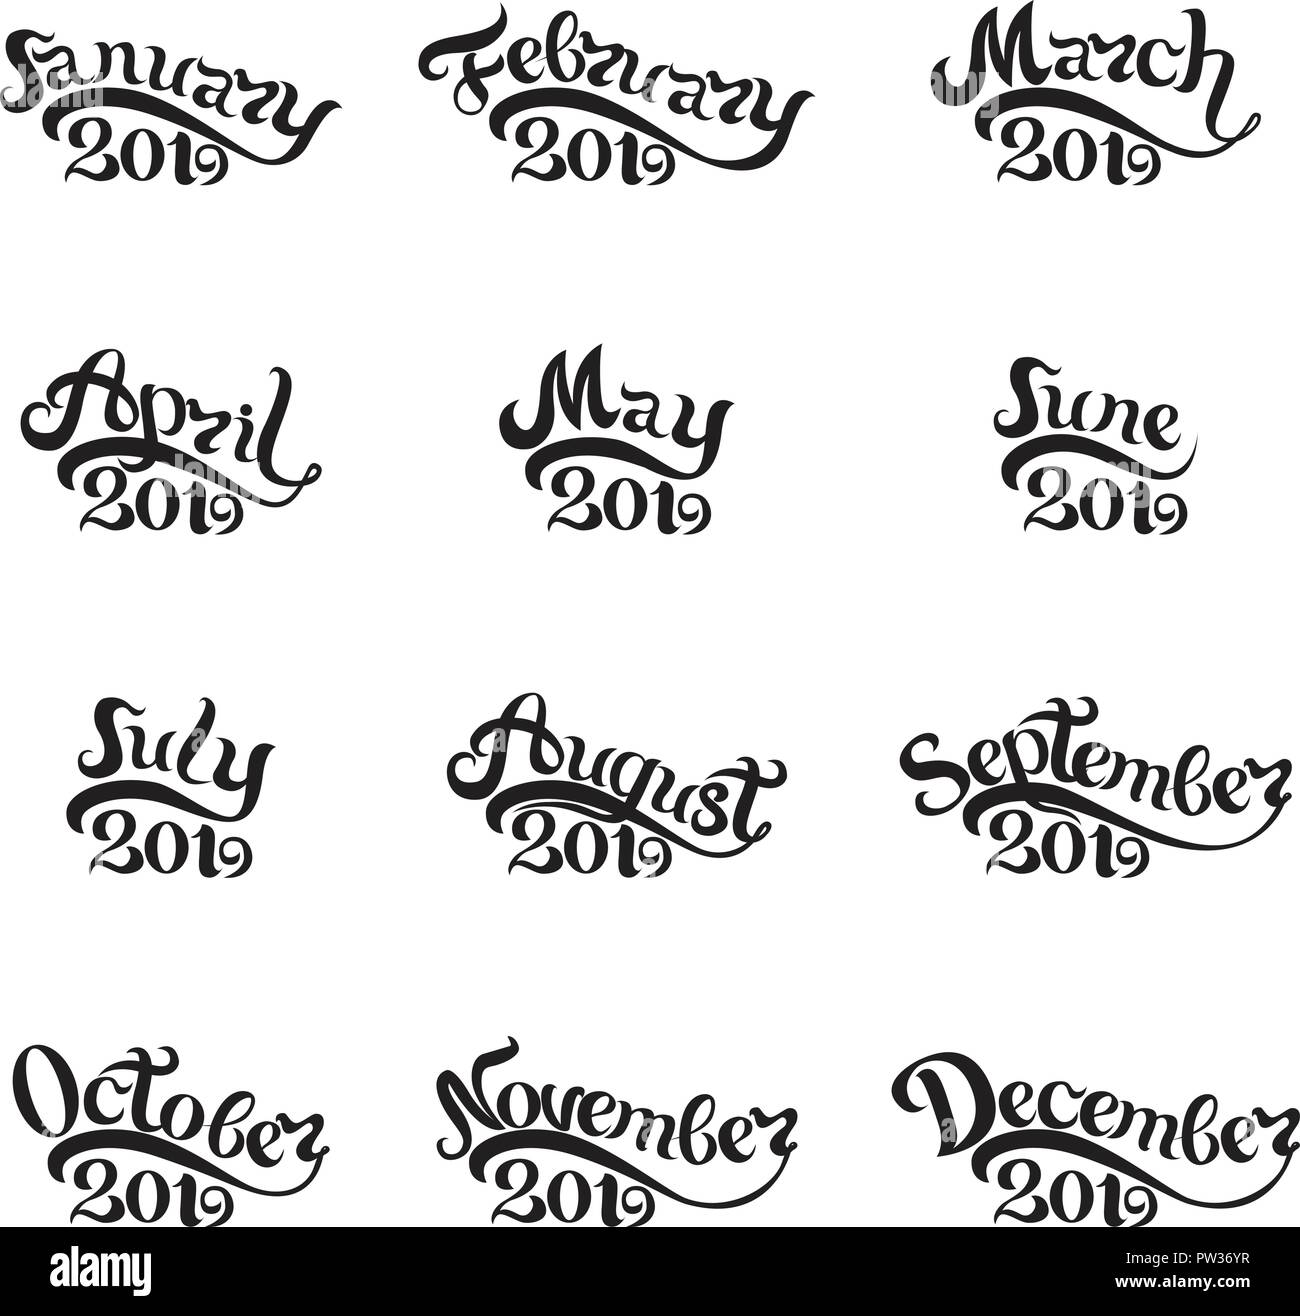 The names of all months 2019 written by hand. Lettering. Beautiful letters on white background. Isolated image for invitations, calendars, t-shirt prints - Stock Image